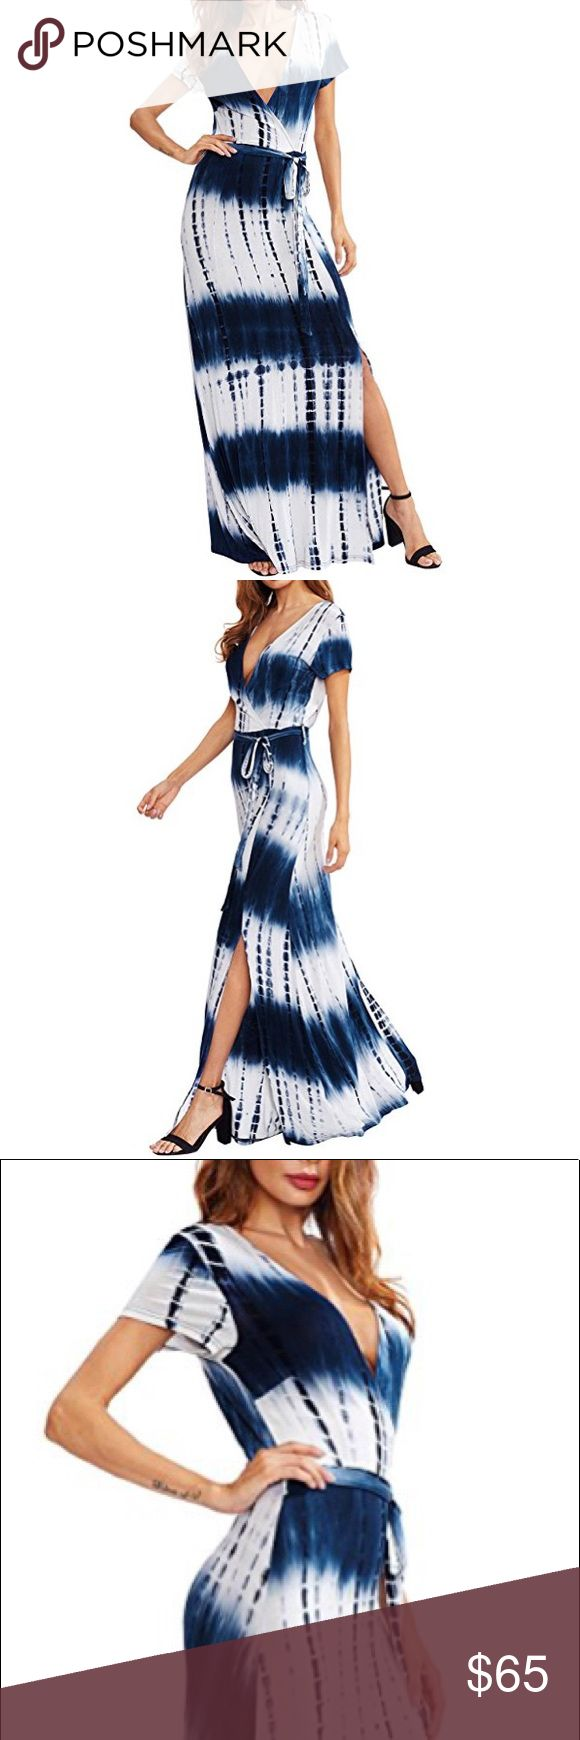 🆕 Blue and White Tie Die Sexy Wrap Maxi Dress NWOT. 95% rayon and 5% spandex. Ties at the waist. So cute and comfy! Dresses Maxi